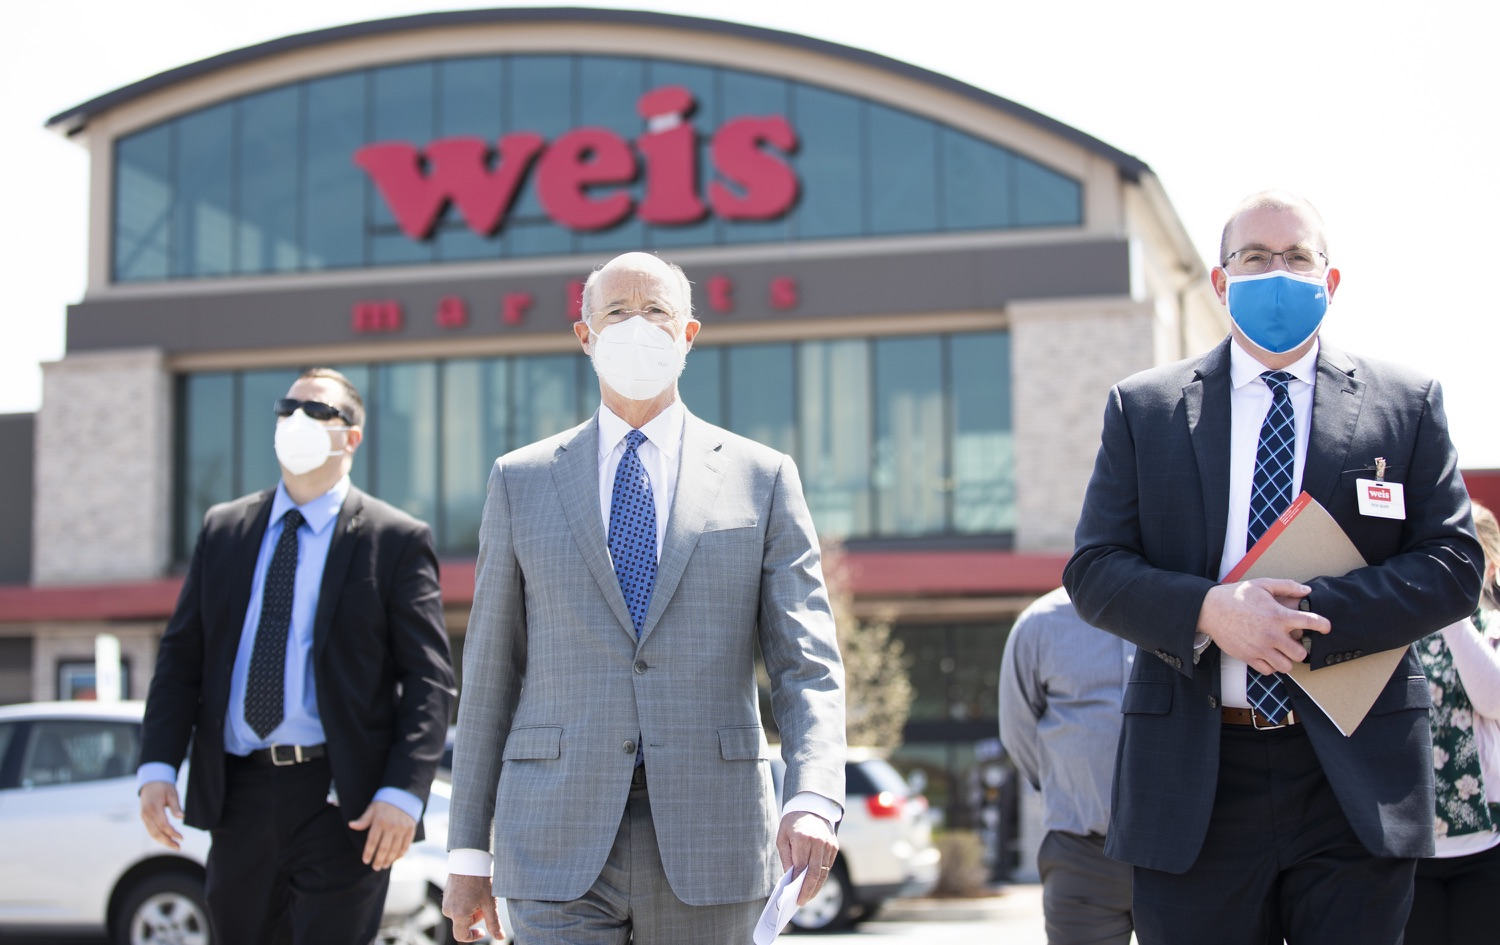 """<a href=""""https://filesource.wostreaming.net/commonwealthofpa/photo/18654_gov_vaccineeligibility_dz_006.jpg"""" target=""""_blank"""">⇣Download Photo<br></a>Pennsylvania Governor Tom Wolf after a tour of Weis Markets with Rick Seipp, vice president of Weis Pharmacy to see the vaccine administration area.   Gov. Tom Wolf visited Weis Markets in Enola, Cumberland County, to recognize the heroic efforts of Pennsylvania's grocery store workers, who are now eligible for the COVID-19 vaccine.  The governor expressed his gratitude to Pennsylvania's 180,000 grocery store workers, who suddenly became frontline workers as the state took critical steps to mitigate the spread of COVID-19. Grocery stores were deemed life-sustaining businesses, and these employees put their lives at risk to ensure their stores remained open to the public. APRIL 06, 2021 - ENOLA, PA.."""